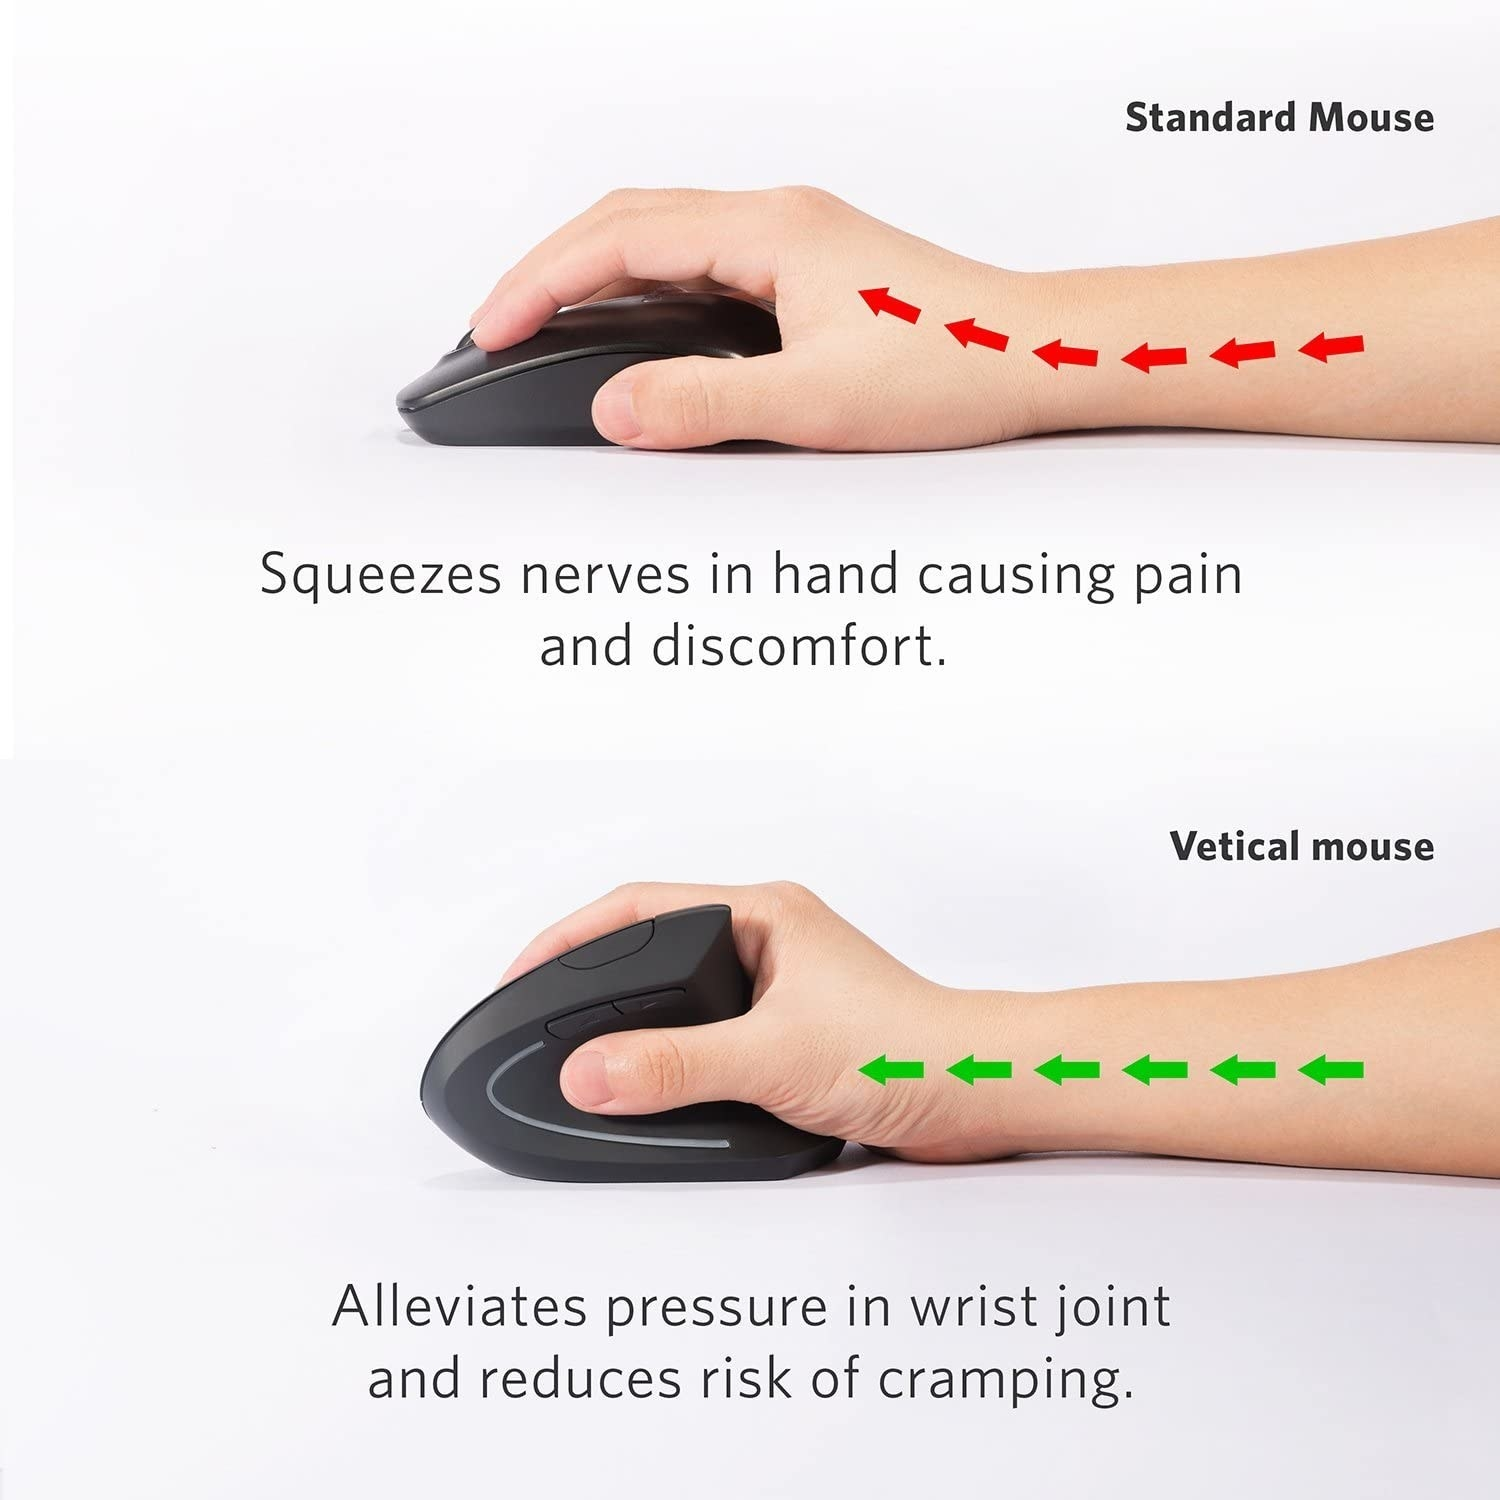 Infographic showing that the vertical mouse is more ergonomic and holds the wrist in a straighter position to alleviate pressure on the wrist joint and reduce the risk of cramping